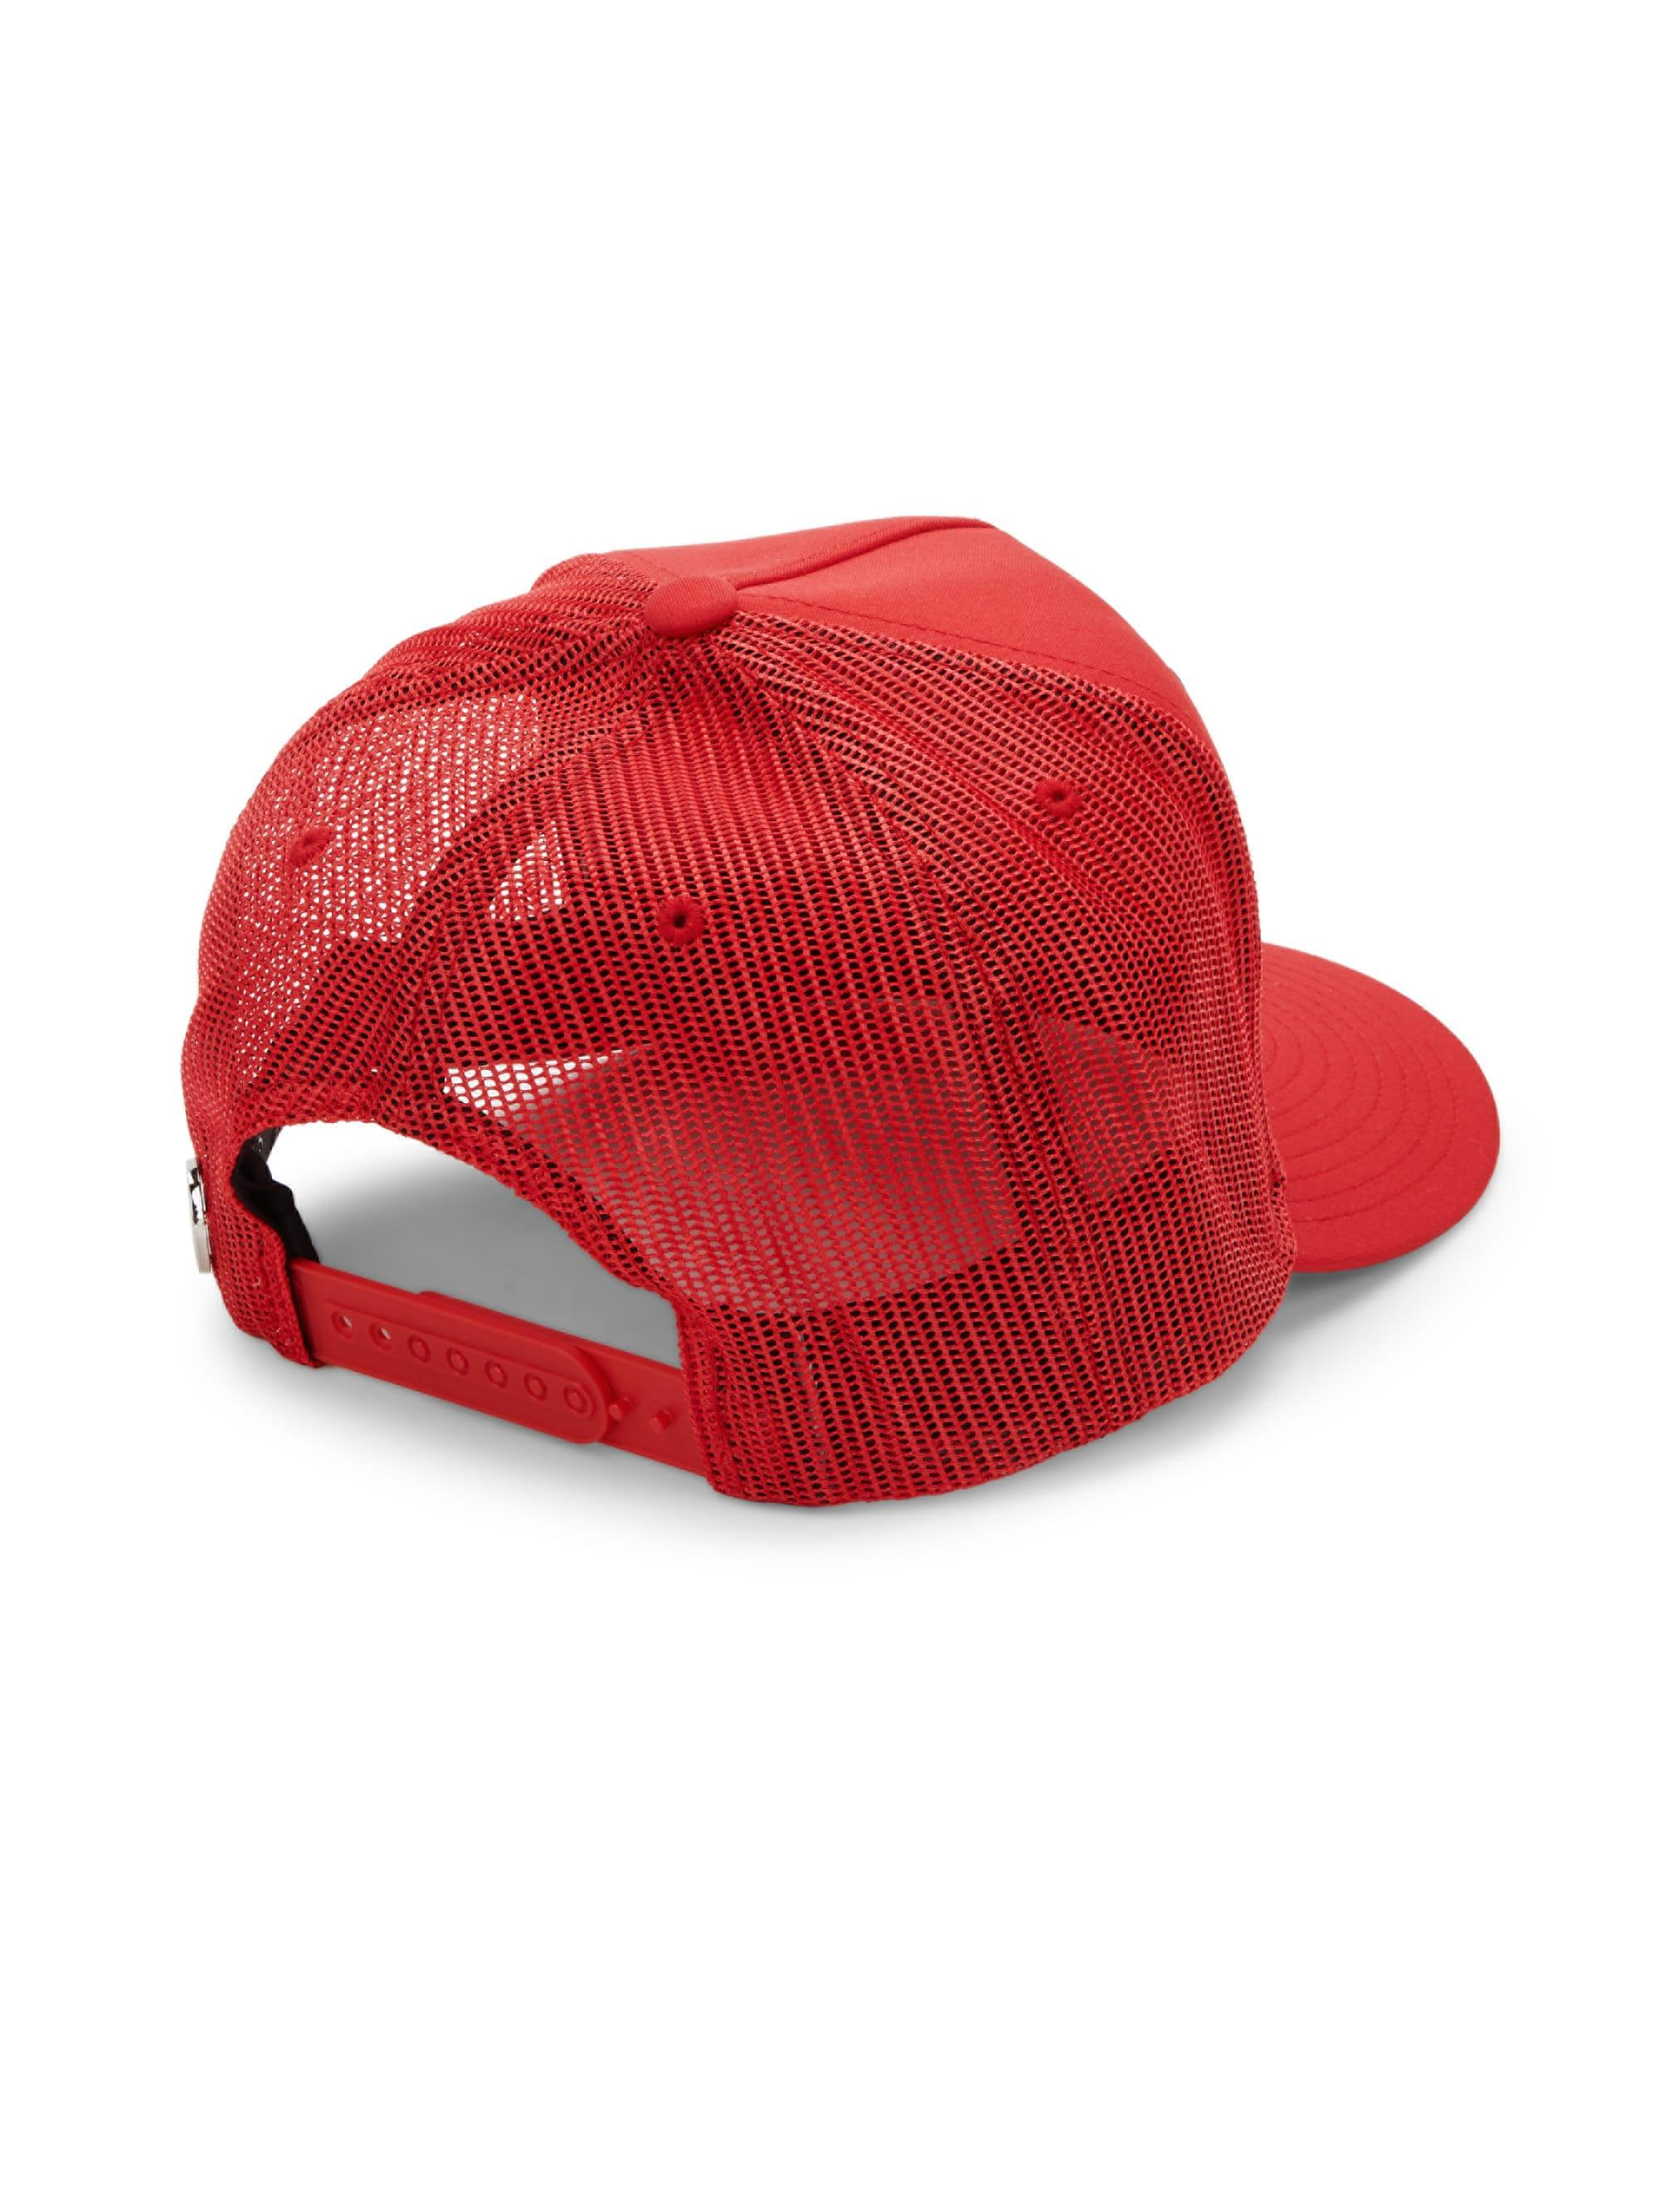 a81128ef1a3 G FORE - Red Men s Can t Break 80 Trucker Hat - Scarlet for. View fullscreen